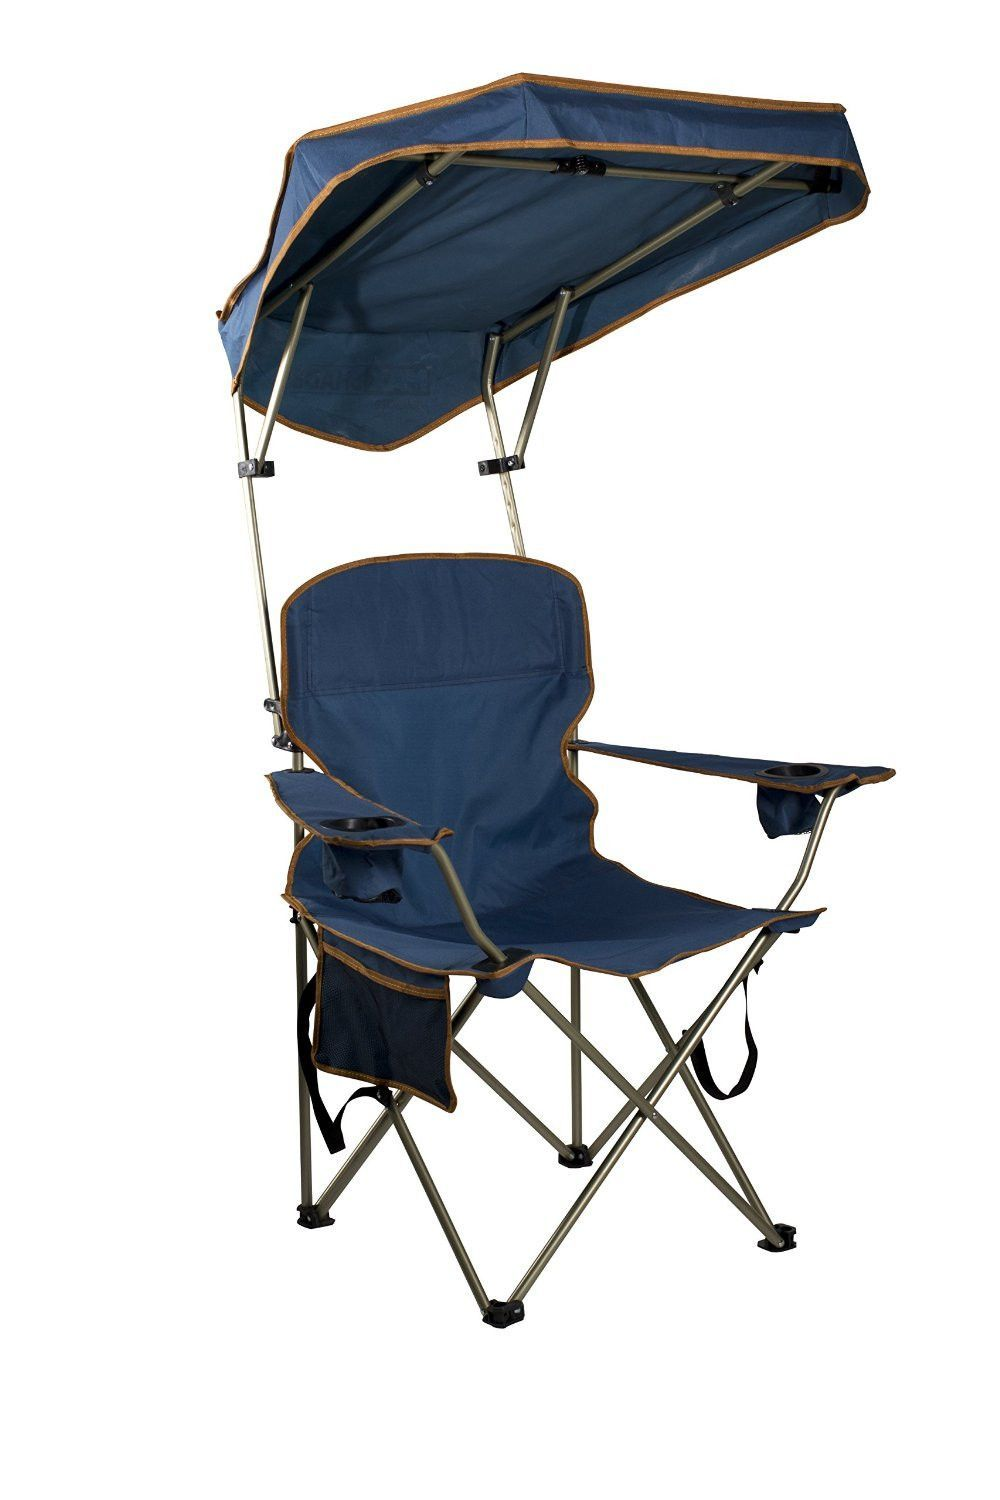 Merica Shade Camp Chair Products Outdoor chairs